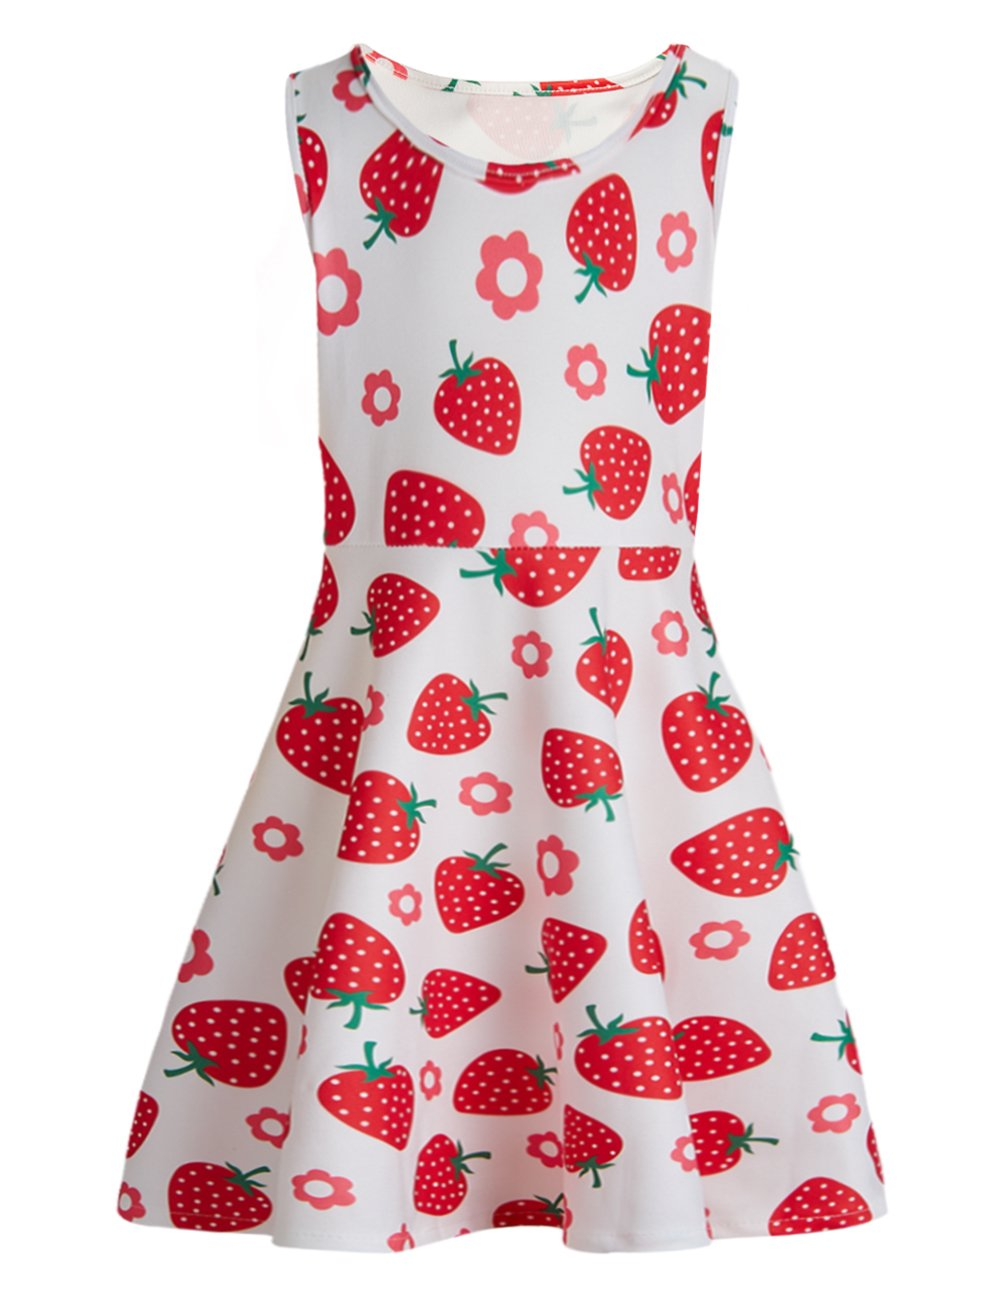 BFUSTYLE Strawberry Dress Fashoin Little Girls Crew-Neck Tunic Skater Playwear Dress Sleeveless Flare Dress in Summer (L,Strawberry)